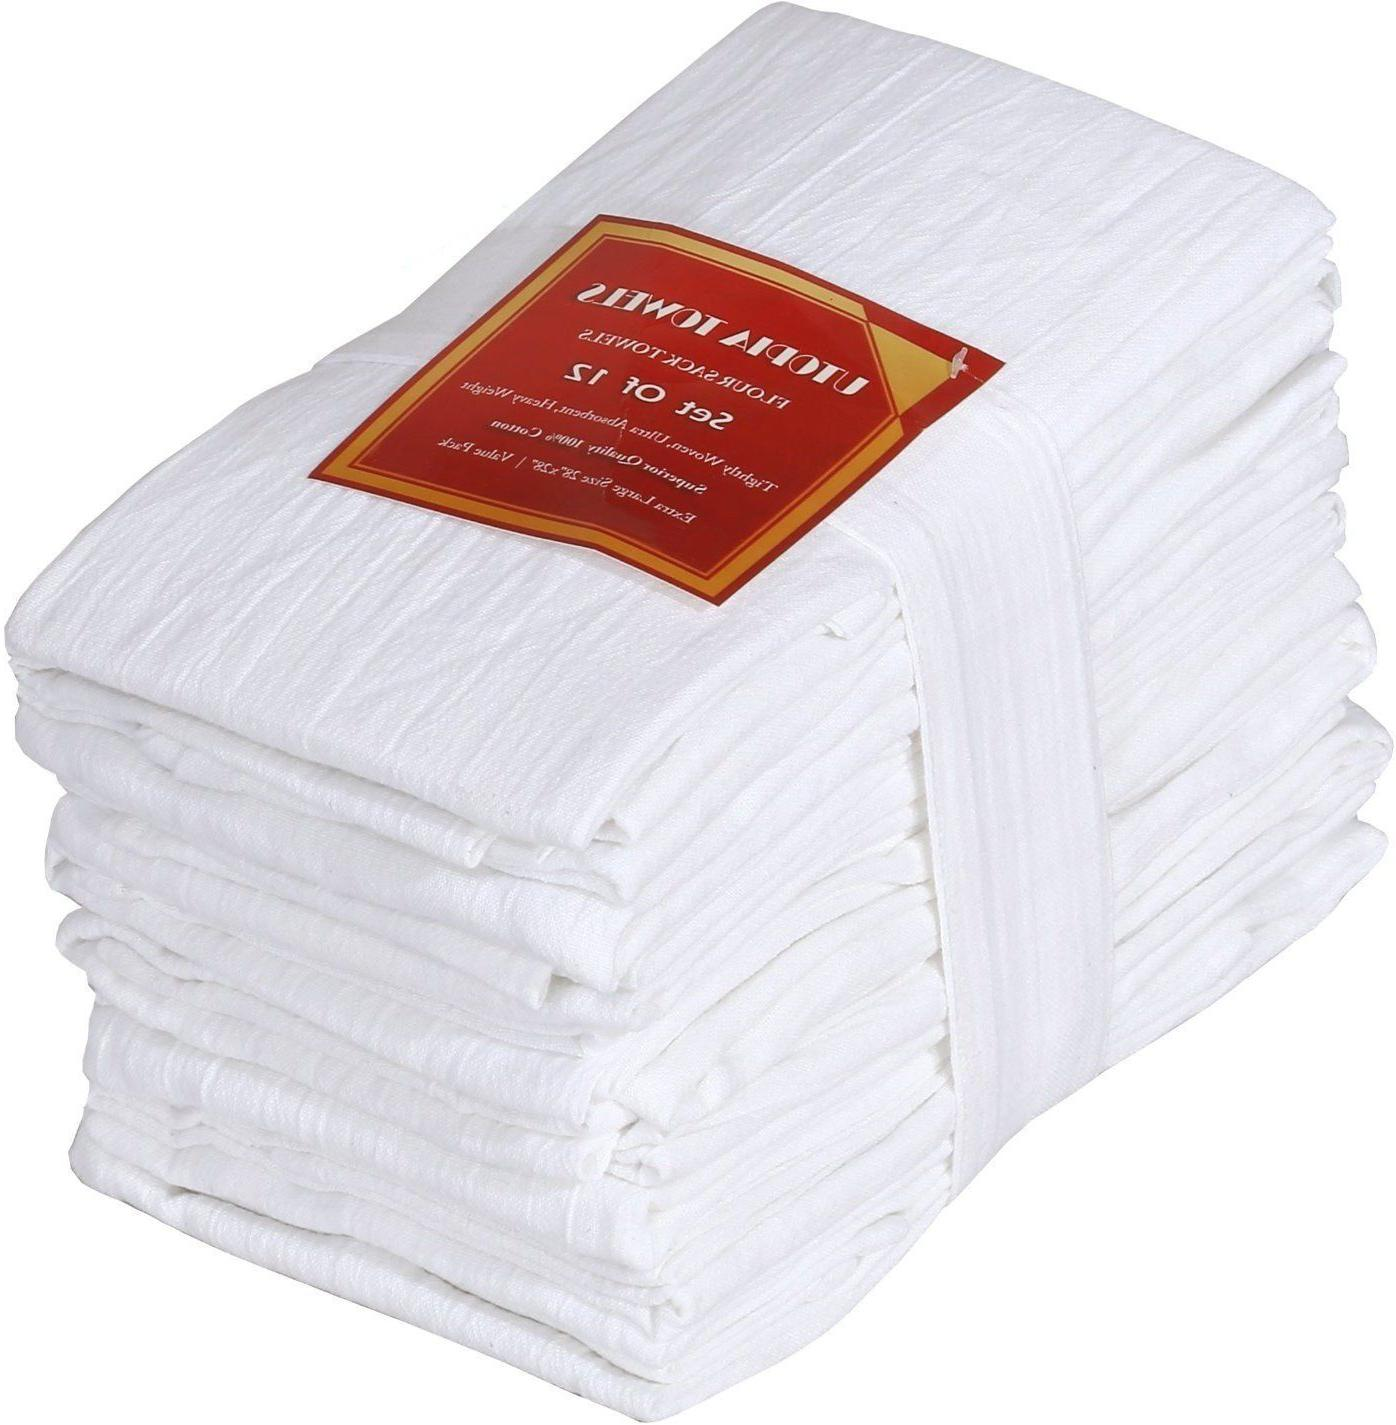 flour sack towels cotton absorbent 12 pack